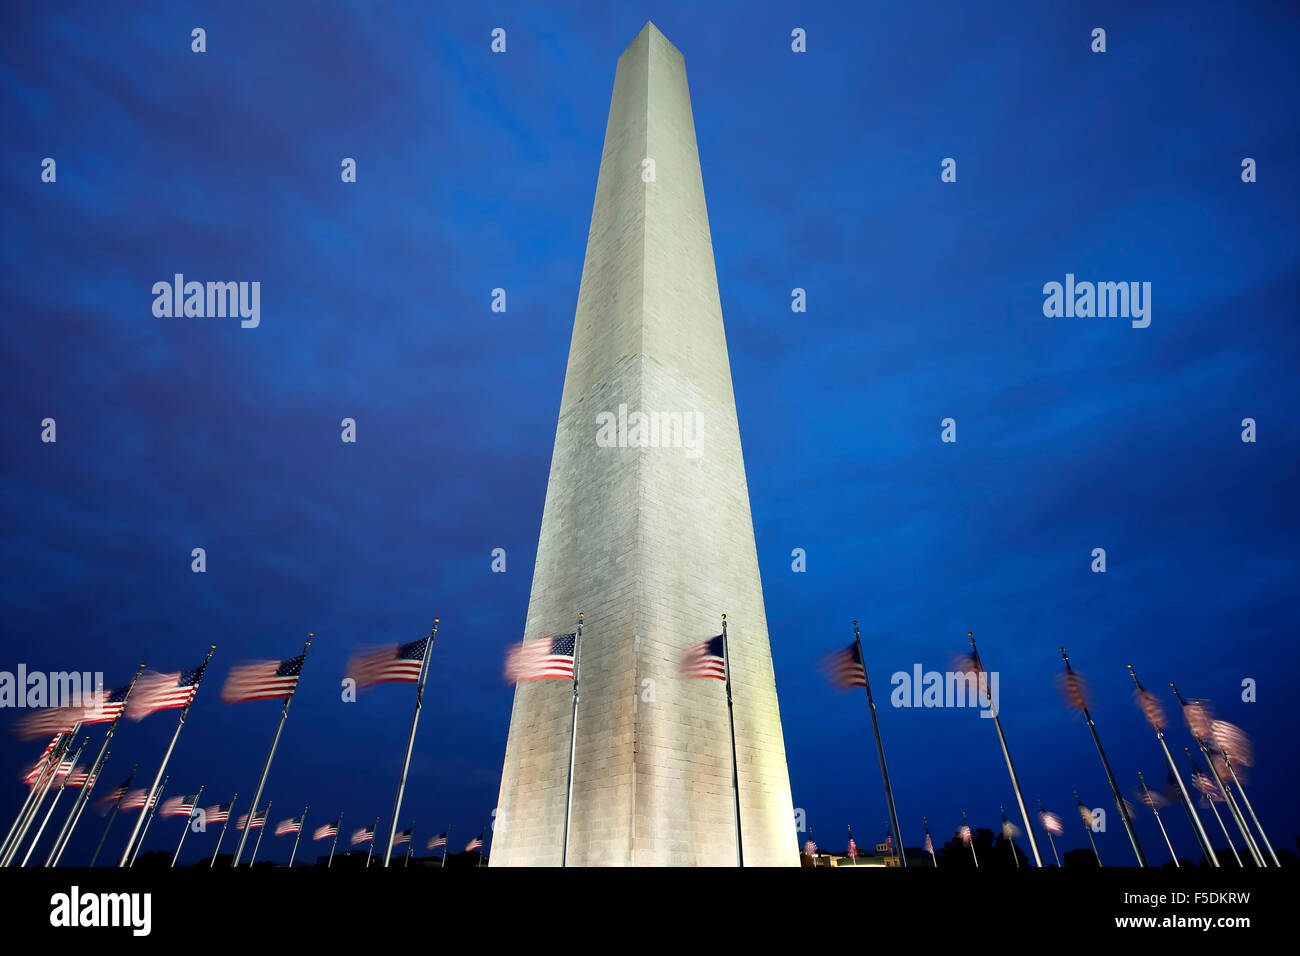 Washington Memorial y las banderas americanas, Washington, Distrito de Columbia, EE.UU. Imagen De Stock